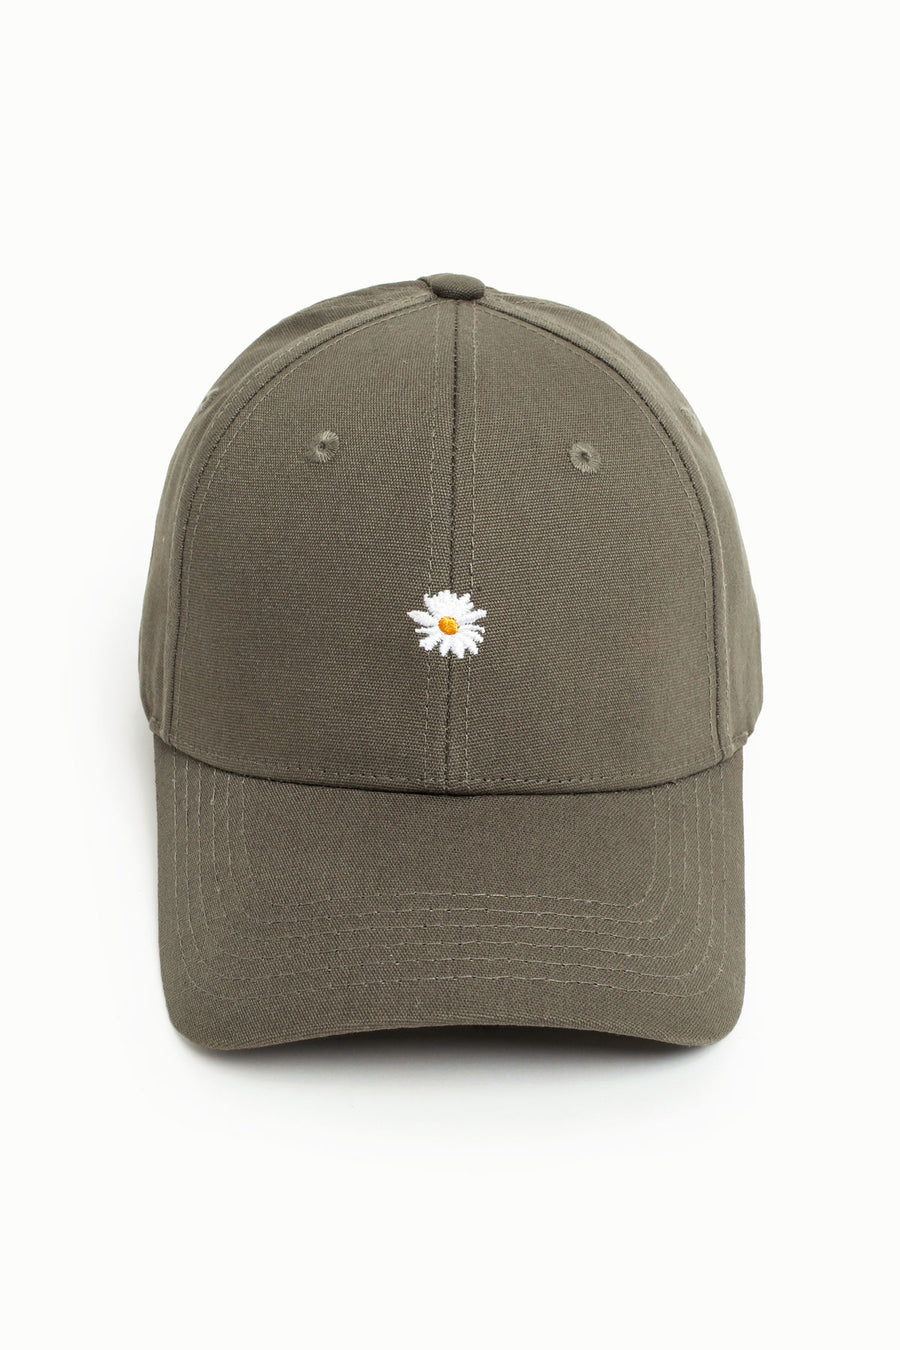 Dainty Daisy High Ponytail Cap - Rifle Green